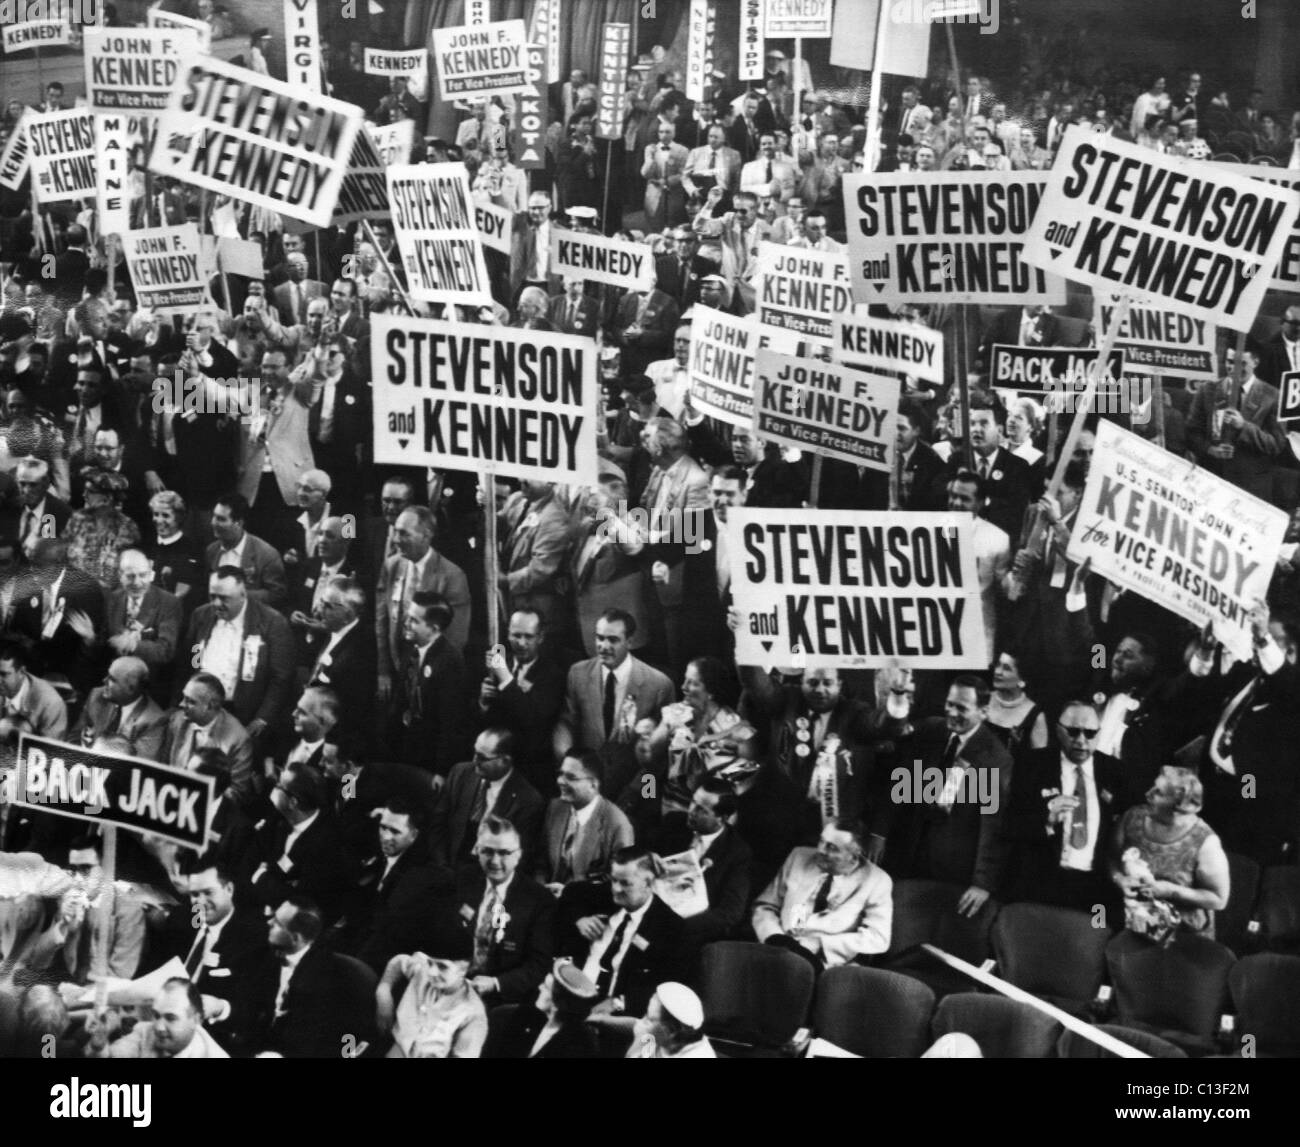 US Elections. Delegates hoist signs supporting US Senator (and future US President) John F. Kennedy as Vice Presidential - Stock Image